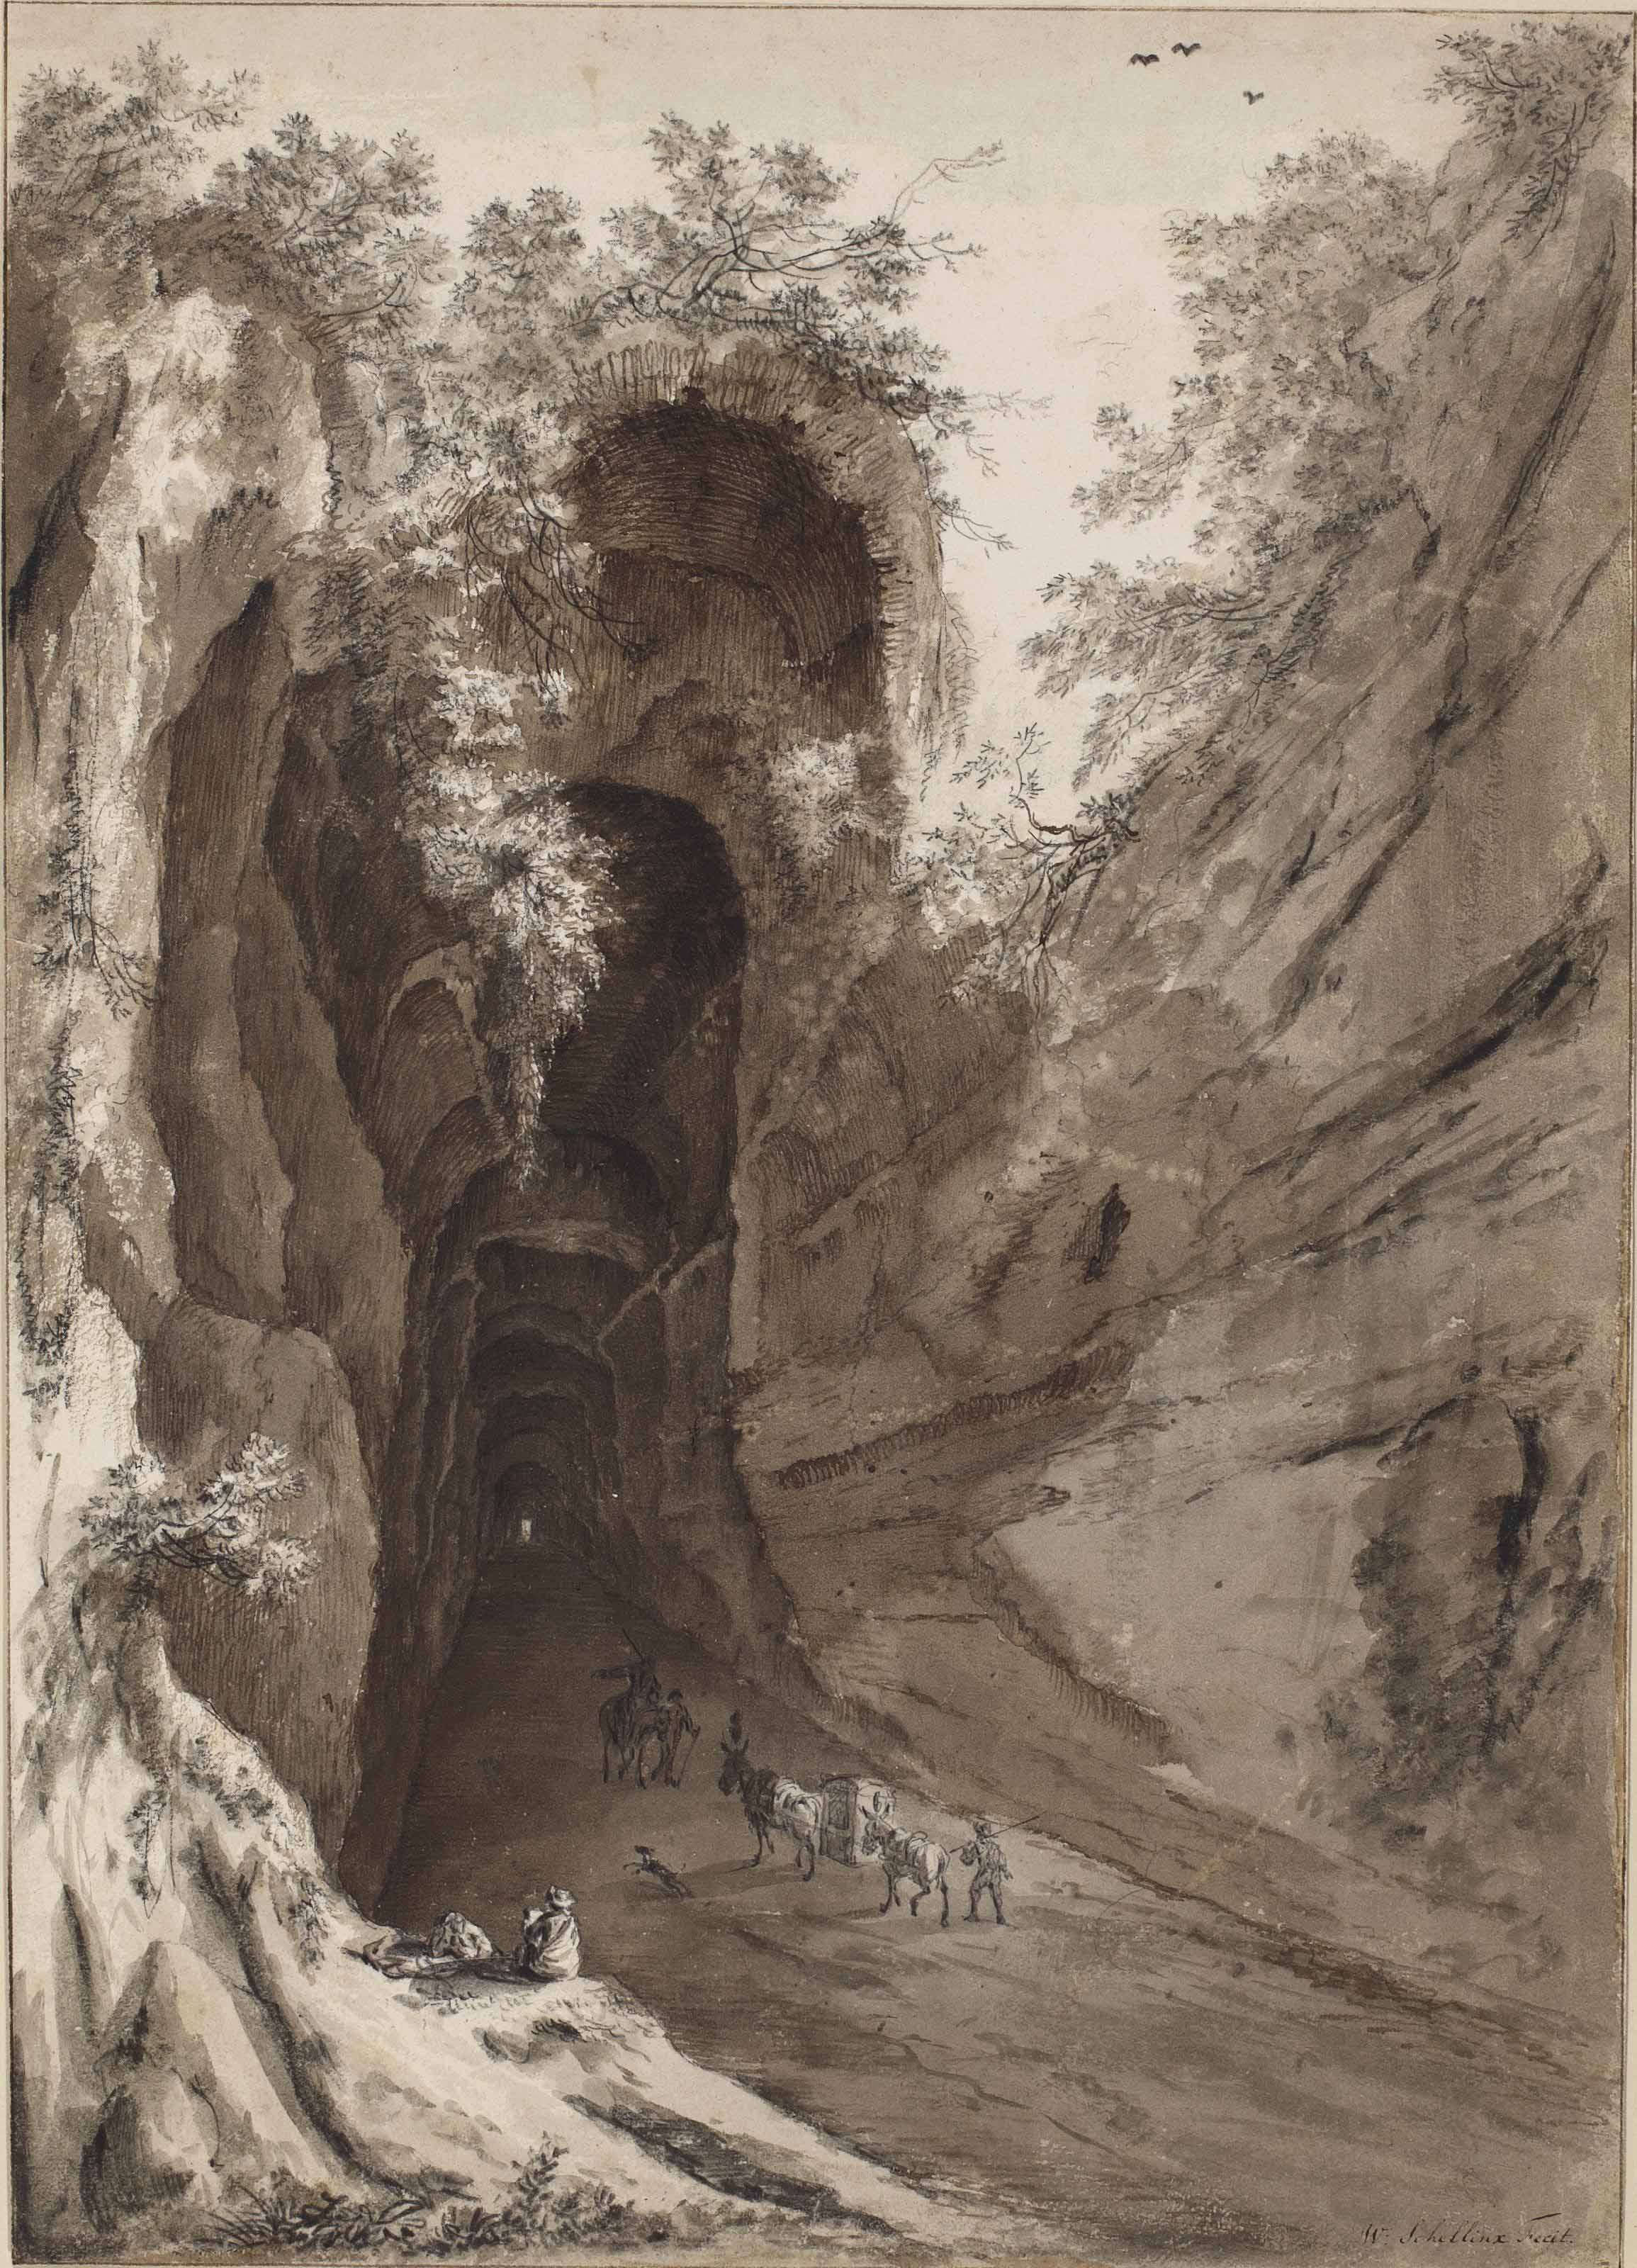 The Grotto of Virgil at Posillipo near Naples